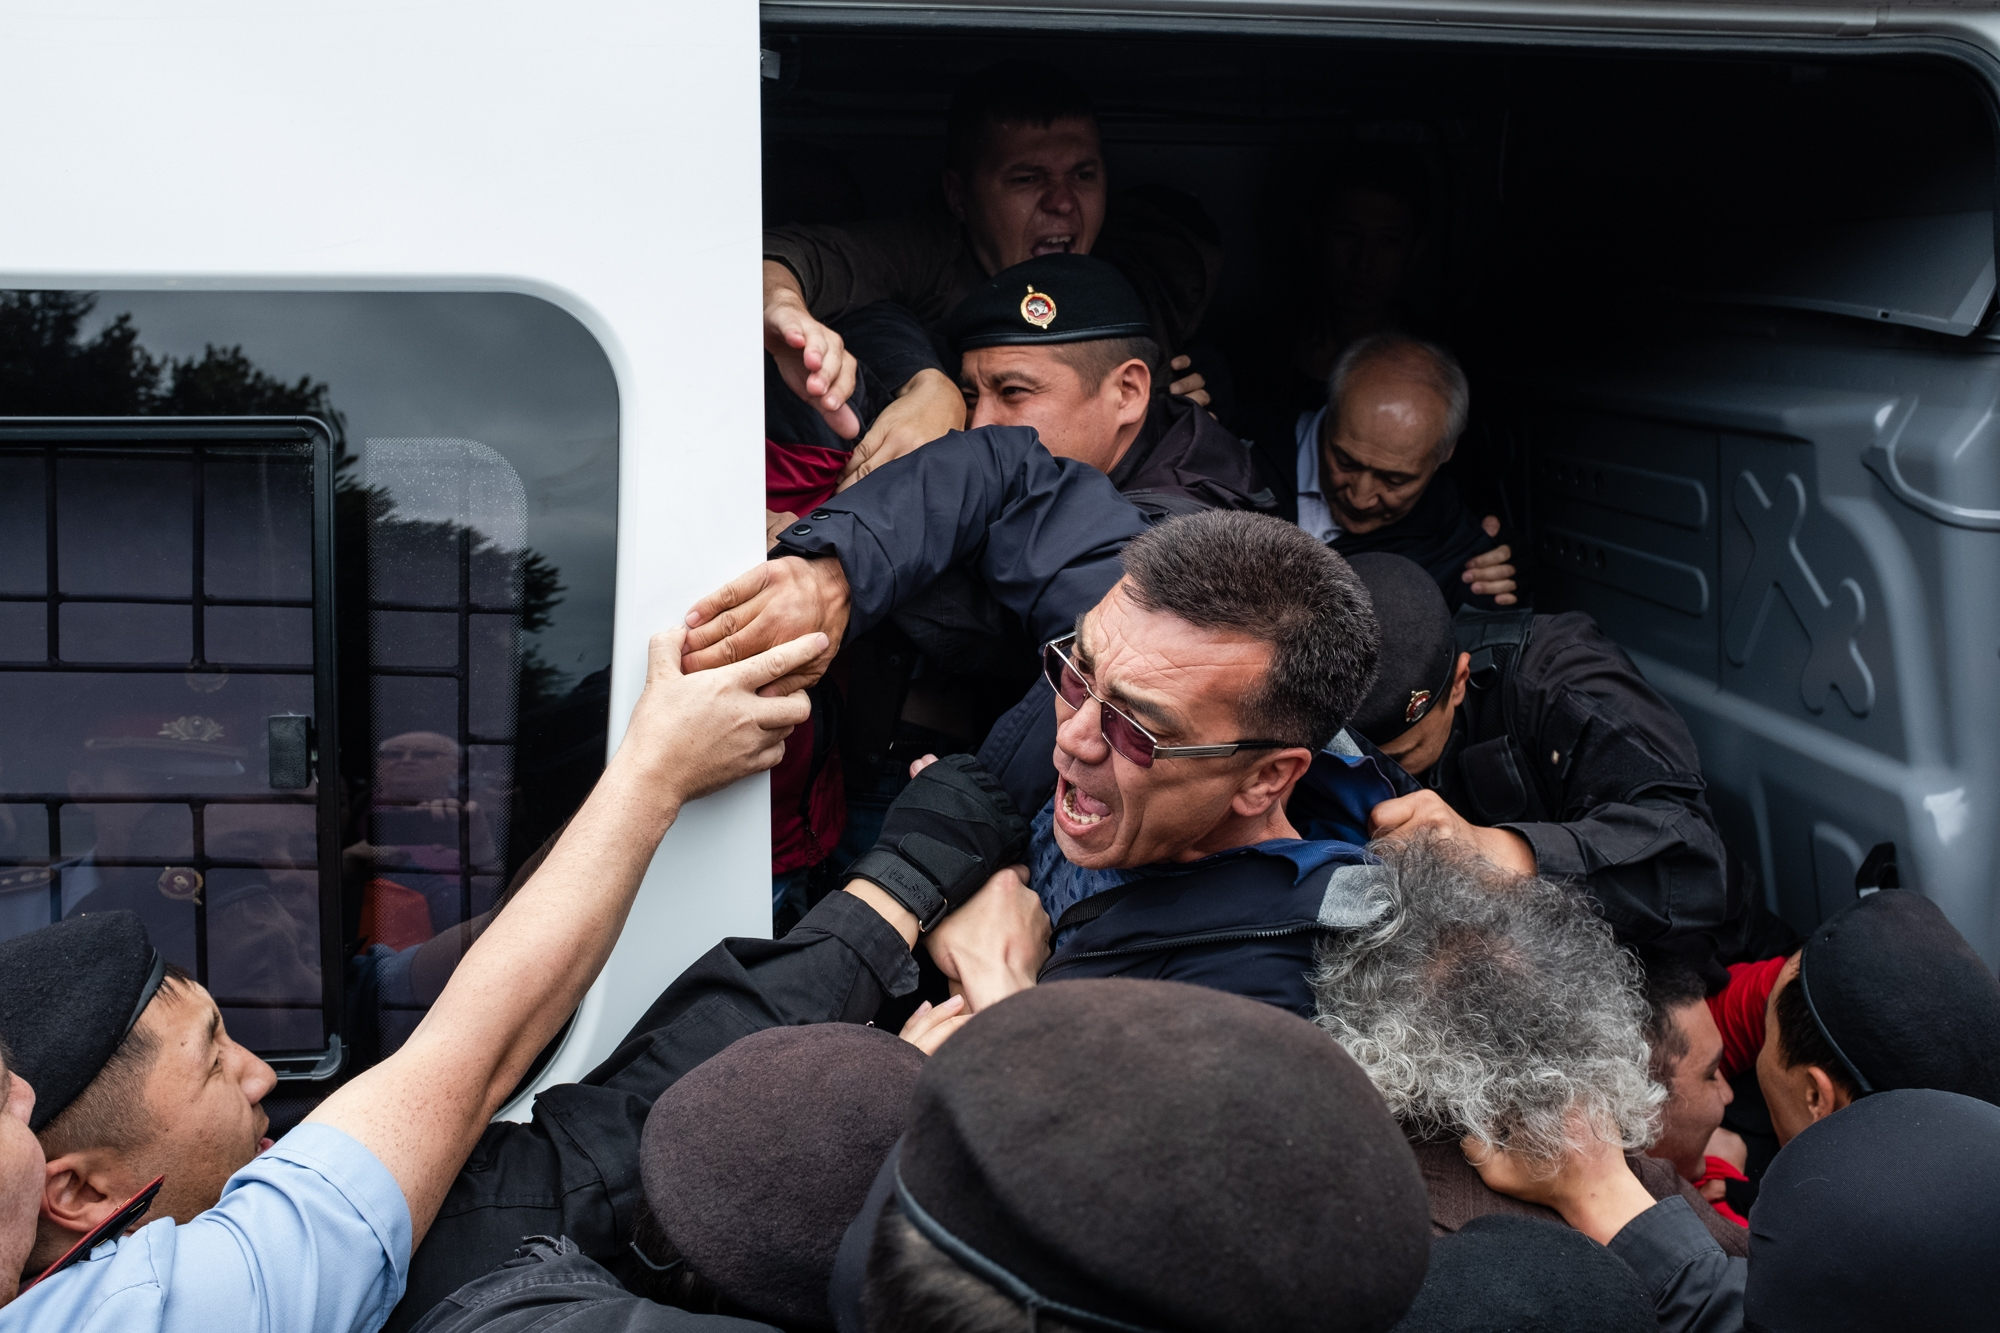 I scream: Protester being shoved into a police van in Almaty on June 9. (Photo: Danil Usmanov)